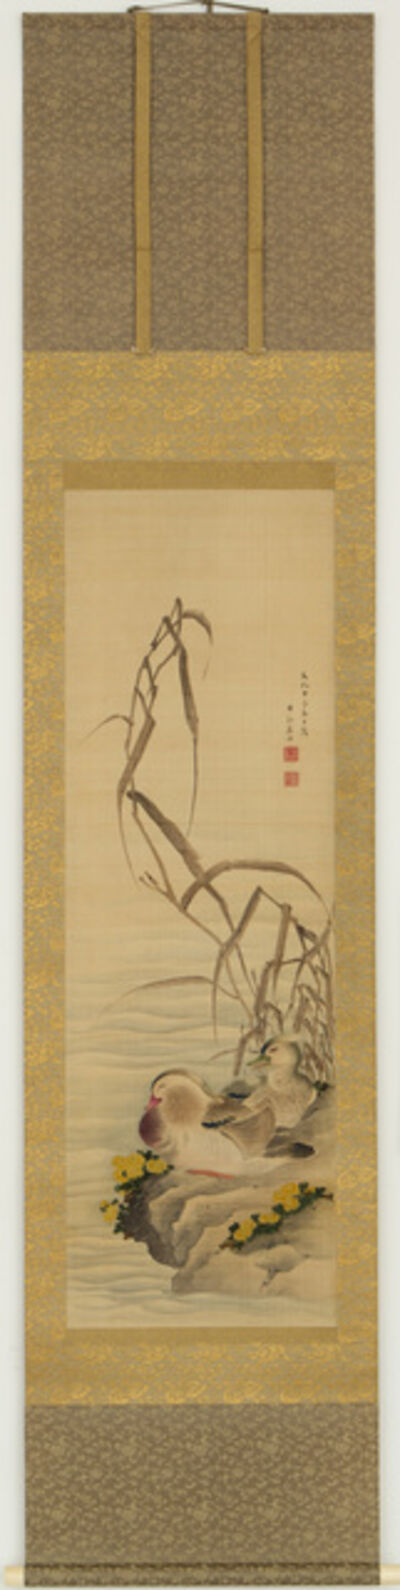 Koike Kyokkou, 'Scroll with Mandarin Duck Pair (T-3795)', Edo period (1615, 1868), dated 1804